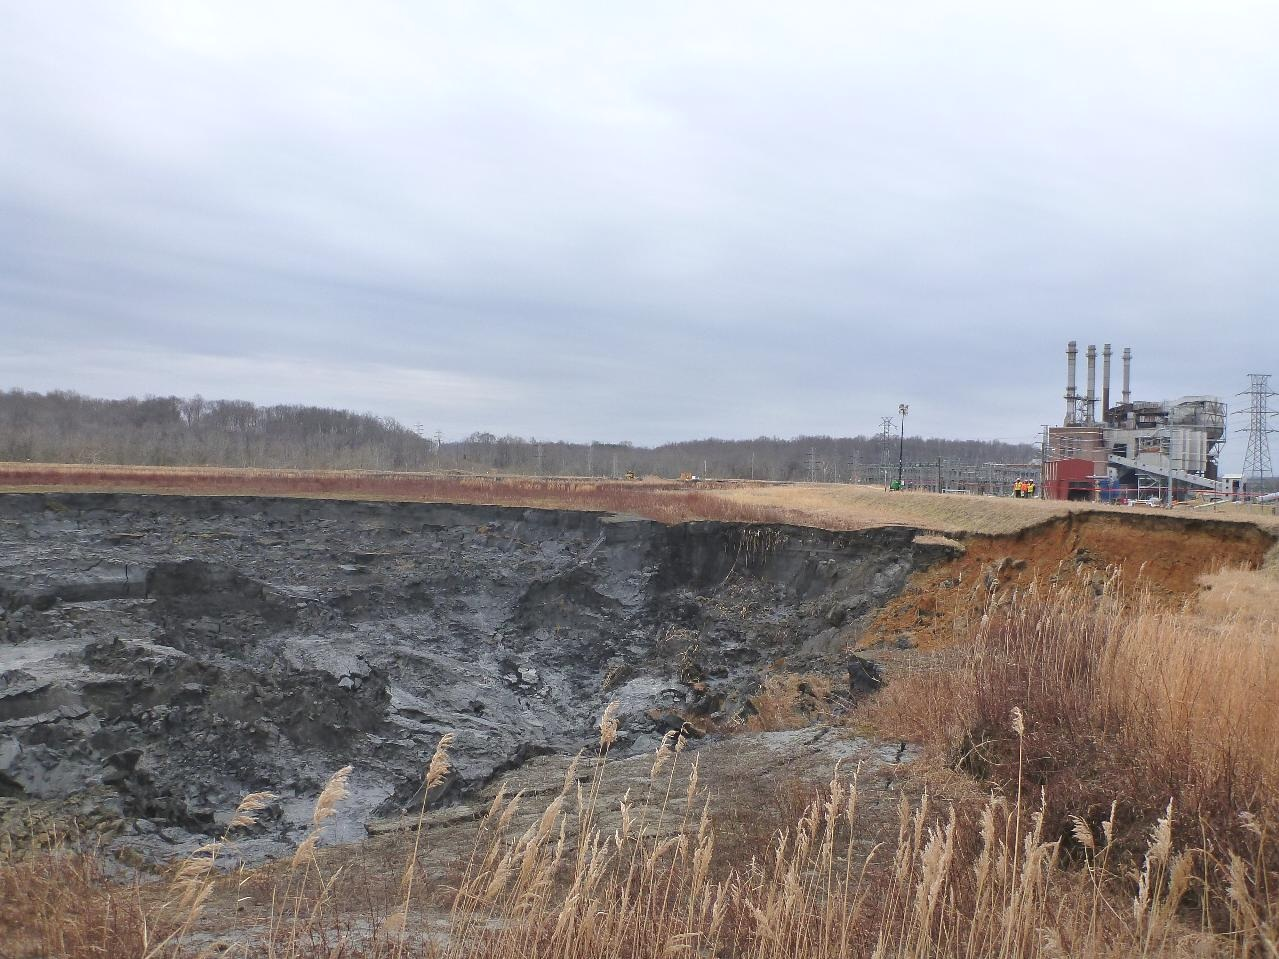 Dan_River_coal_ash_spill_-_impoundment_and_power_plant_-_2014.jpg